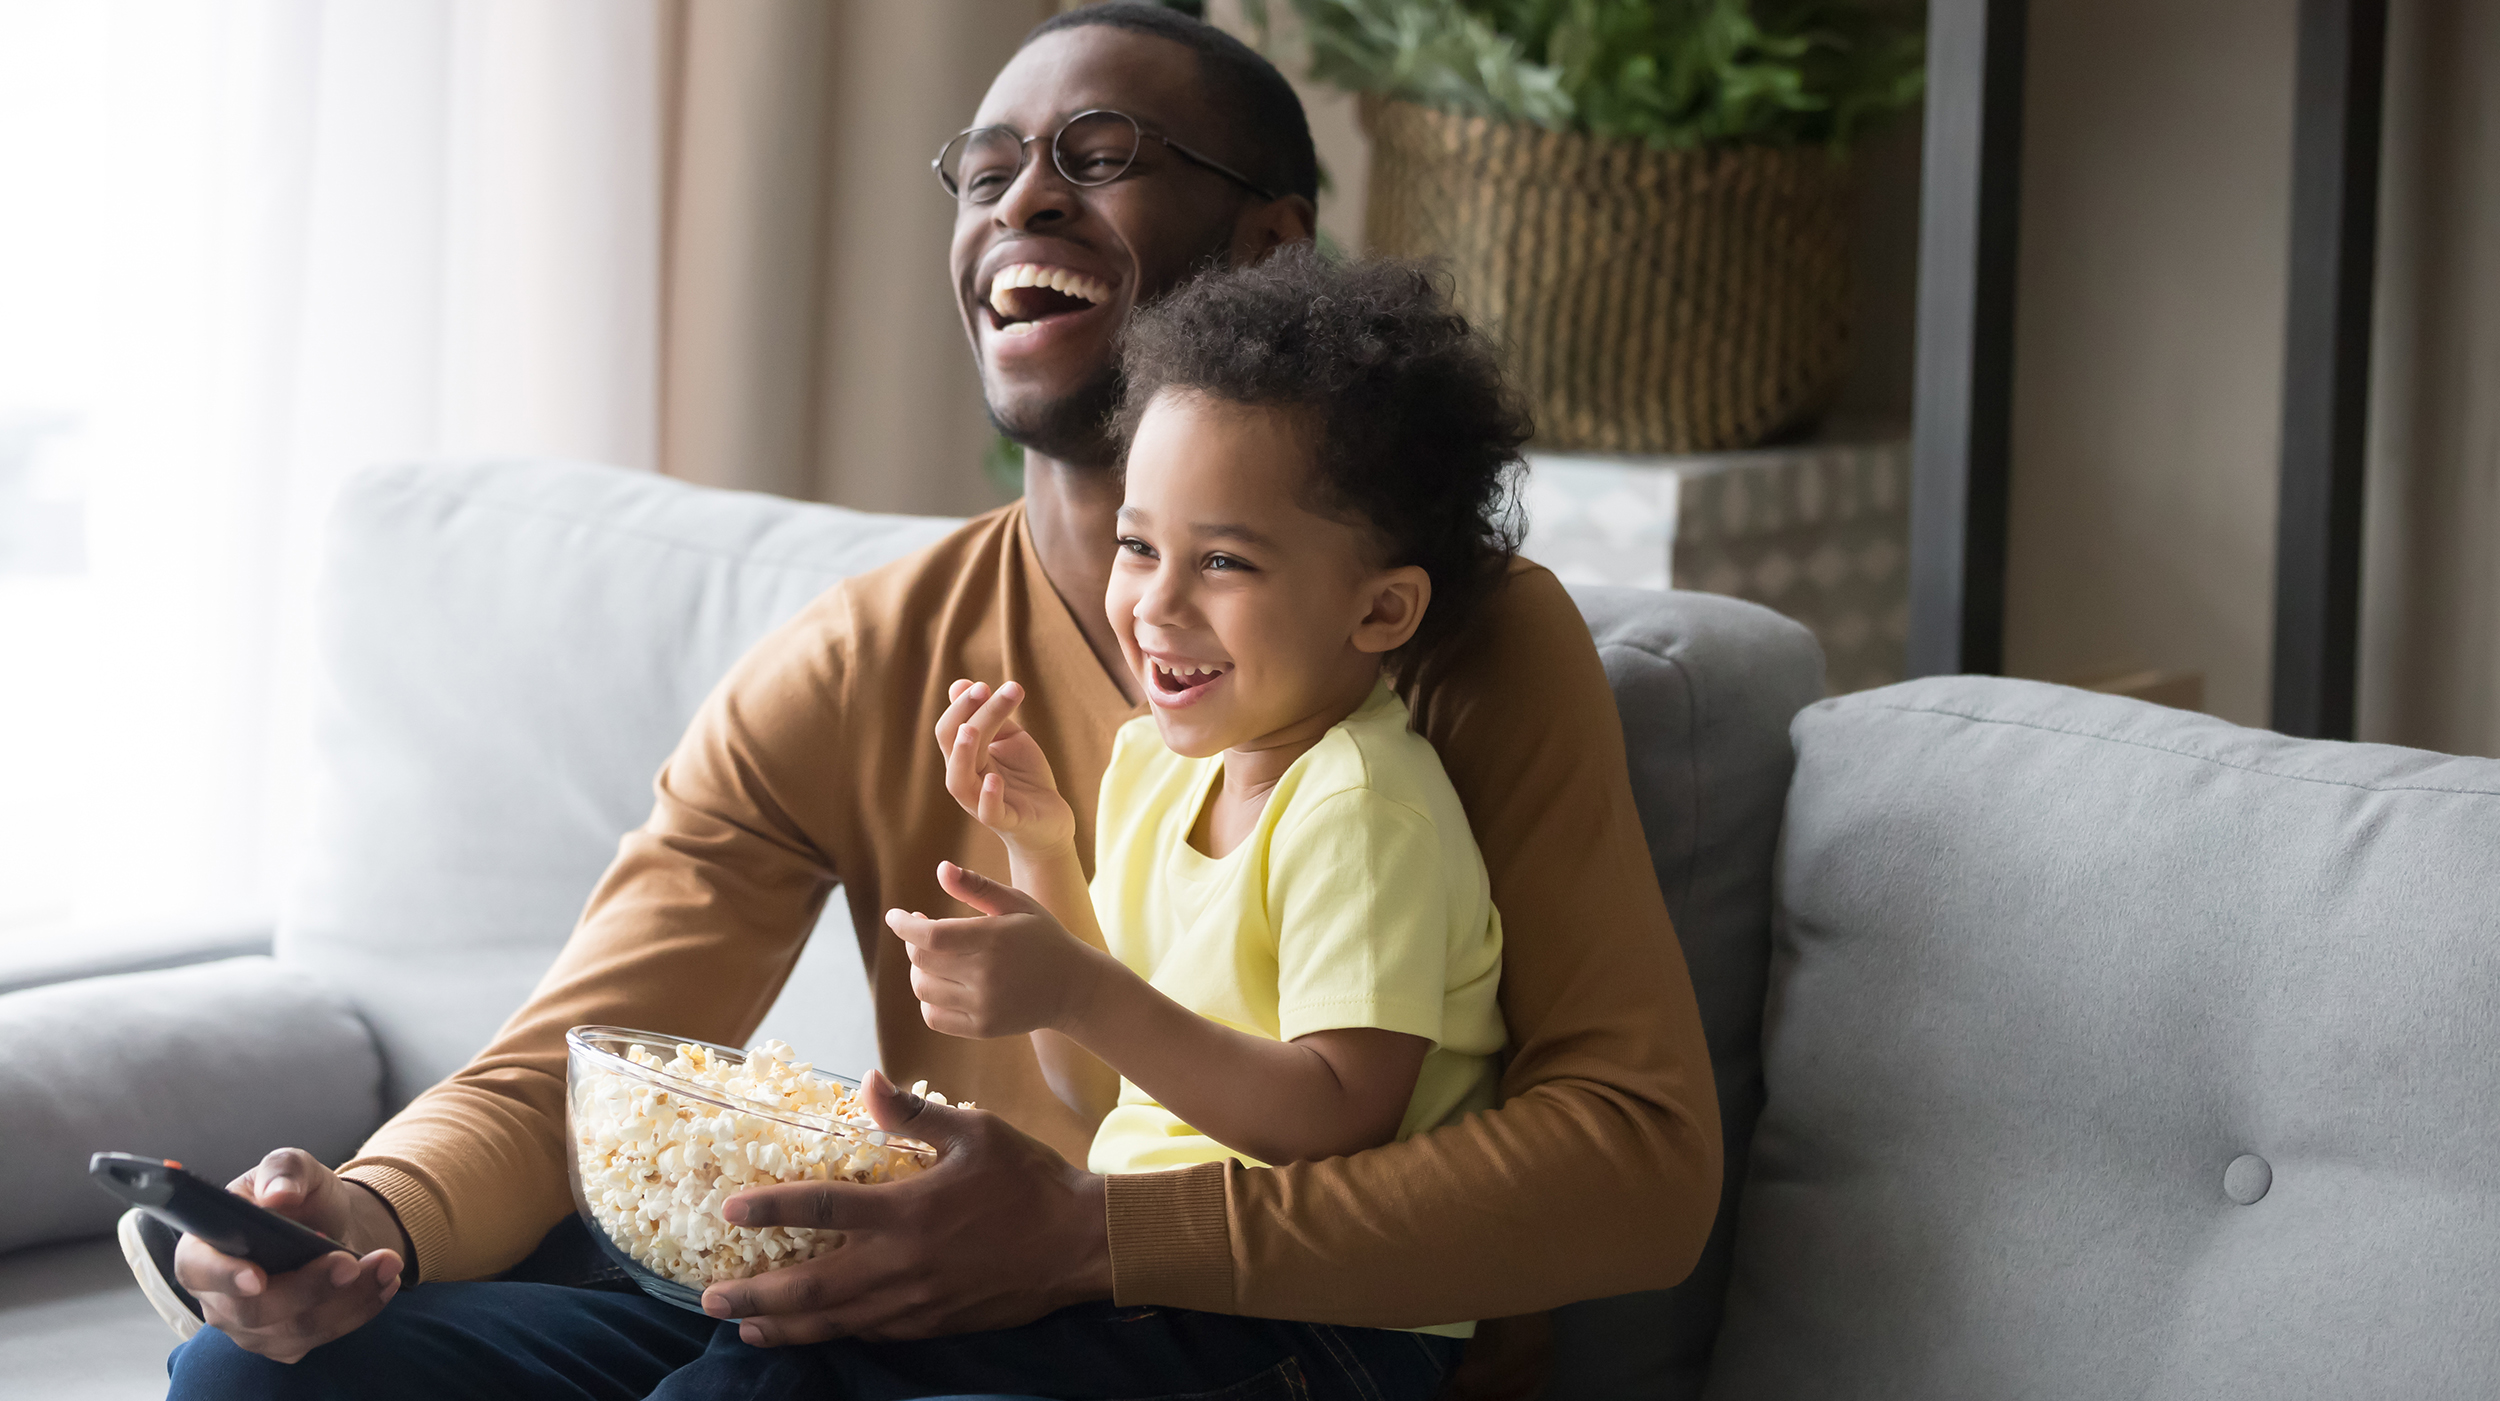 Father and child laugh together while watching a tv show